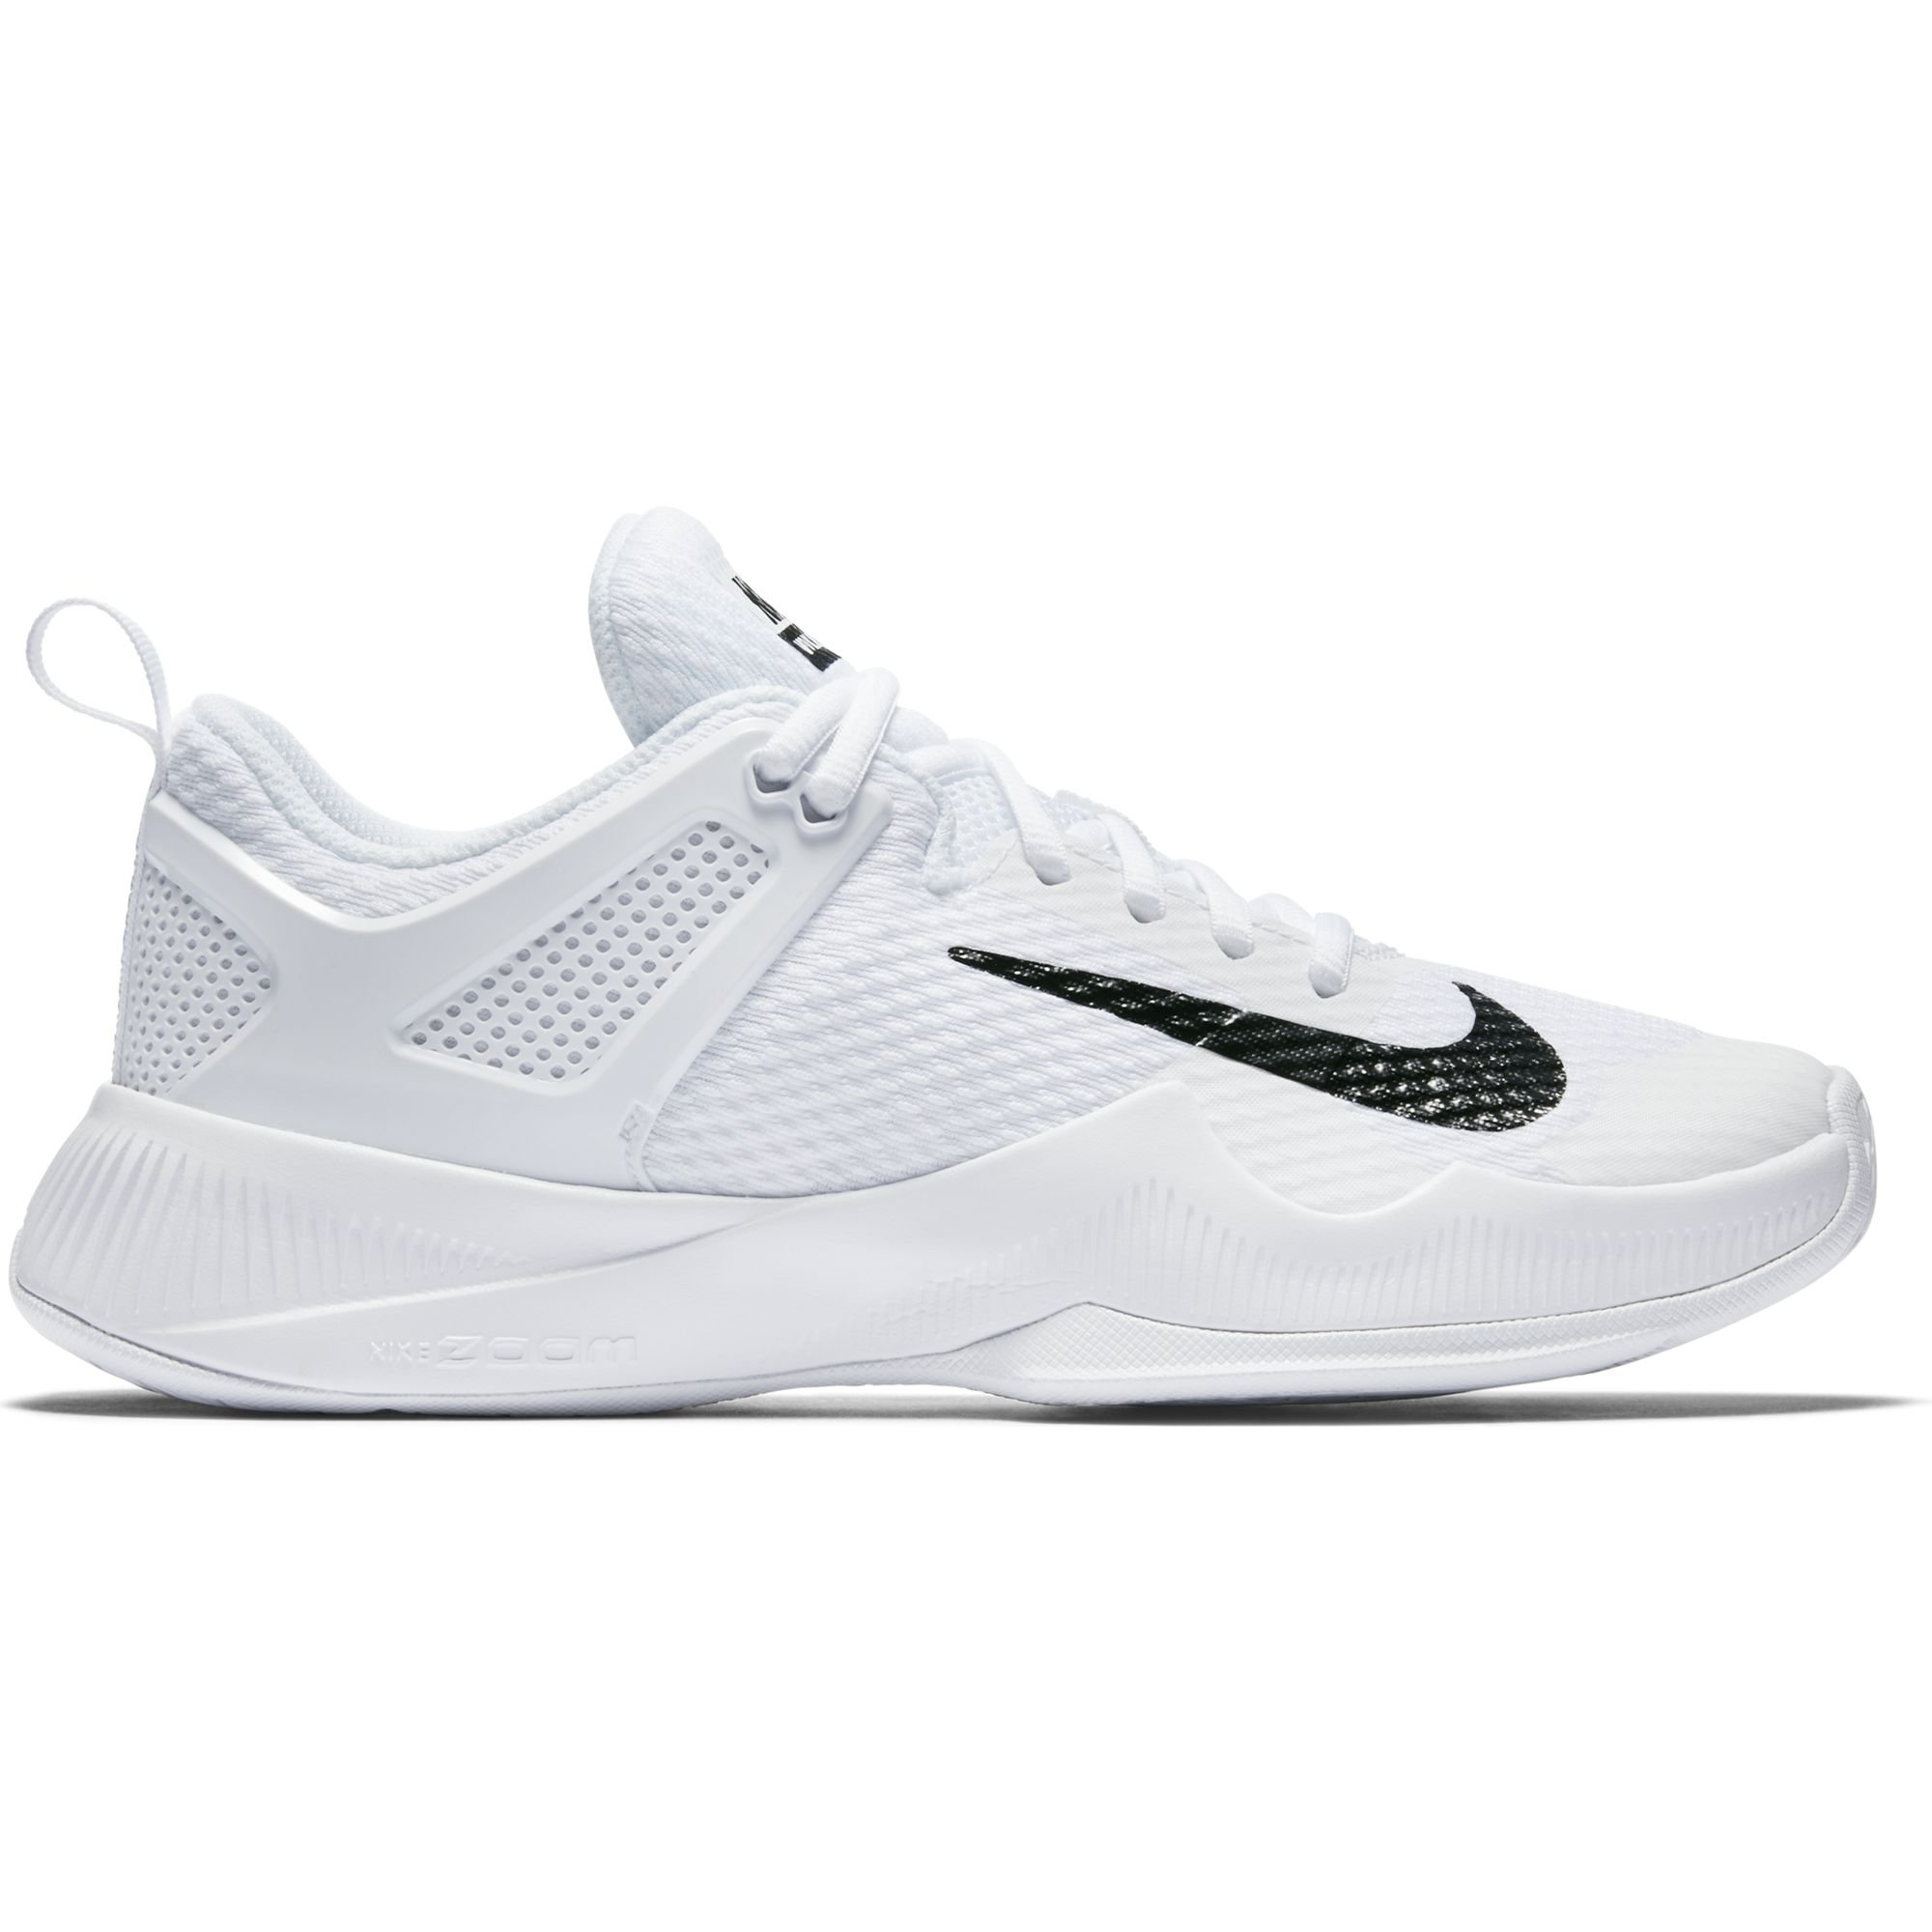 Galleon - Nike Women s Air Zoom Hyperace Volleyball Shoes White Black Size  7 M US 90434165ea